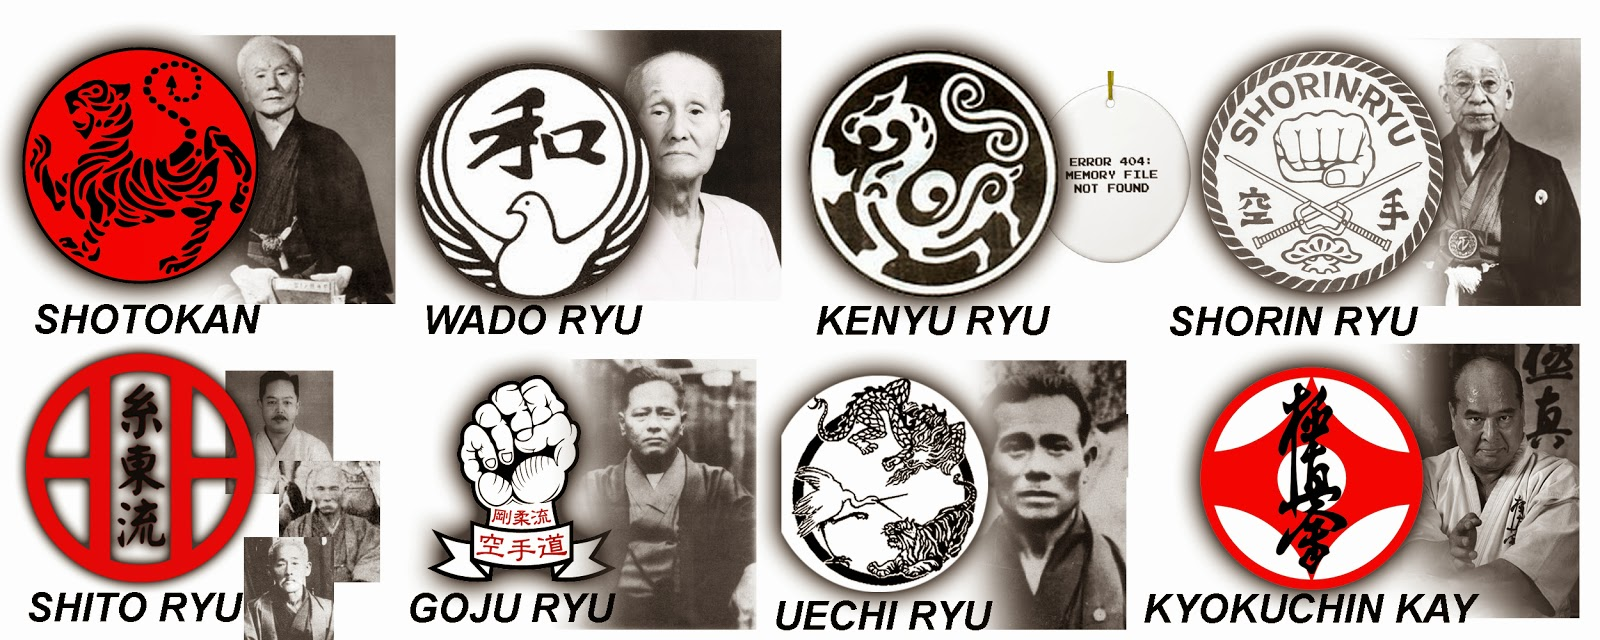 Some Karate styles